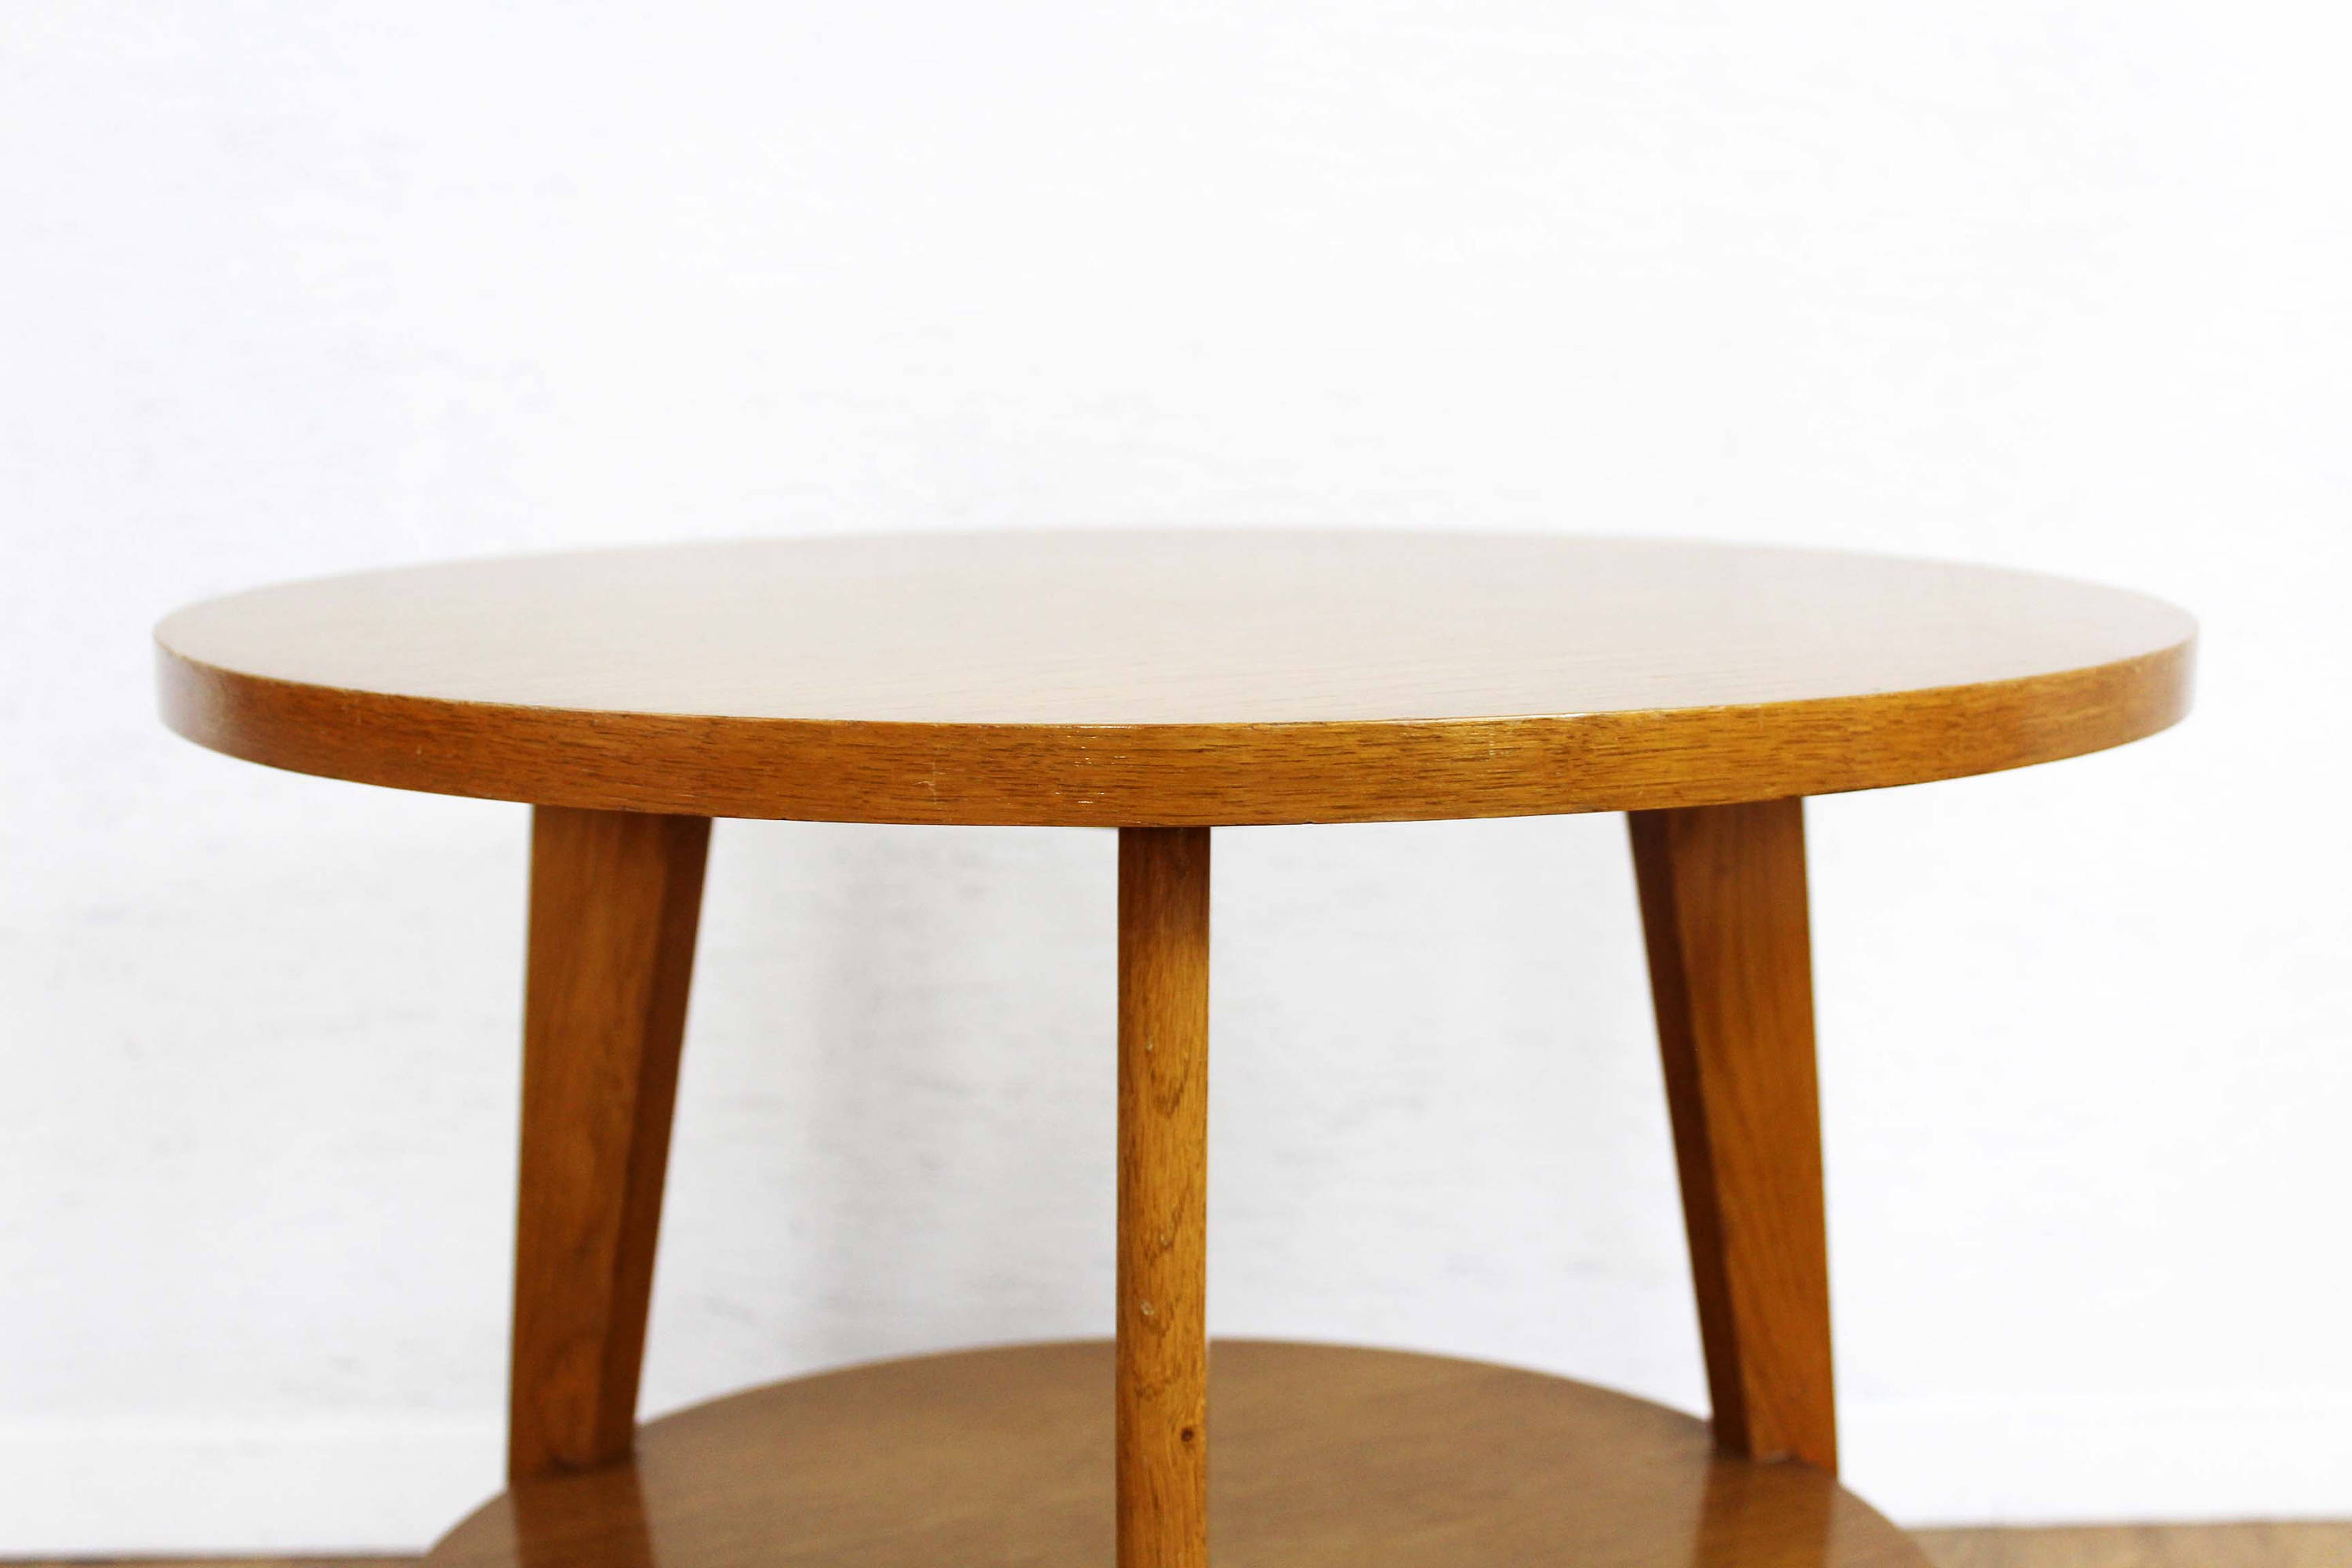 Table d 39 appoint design scandinave syn brocante - Table d appoint scandinave ...